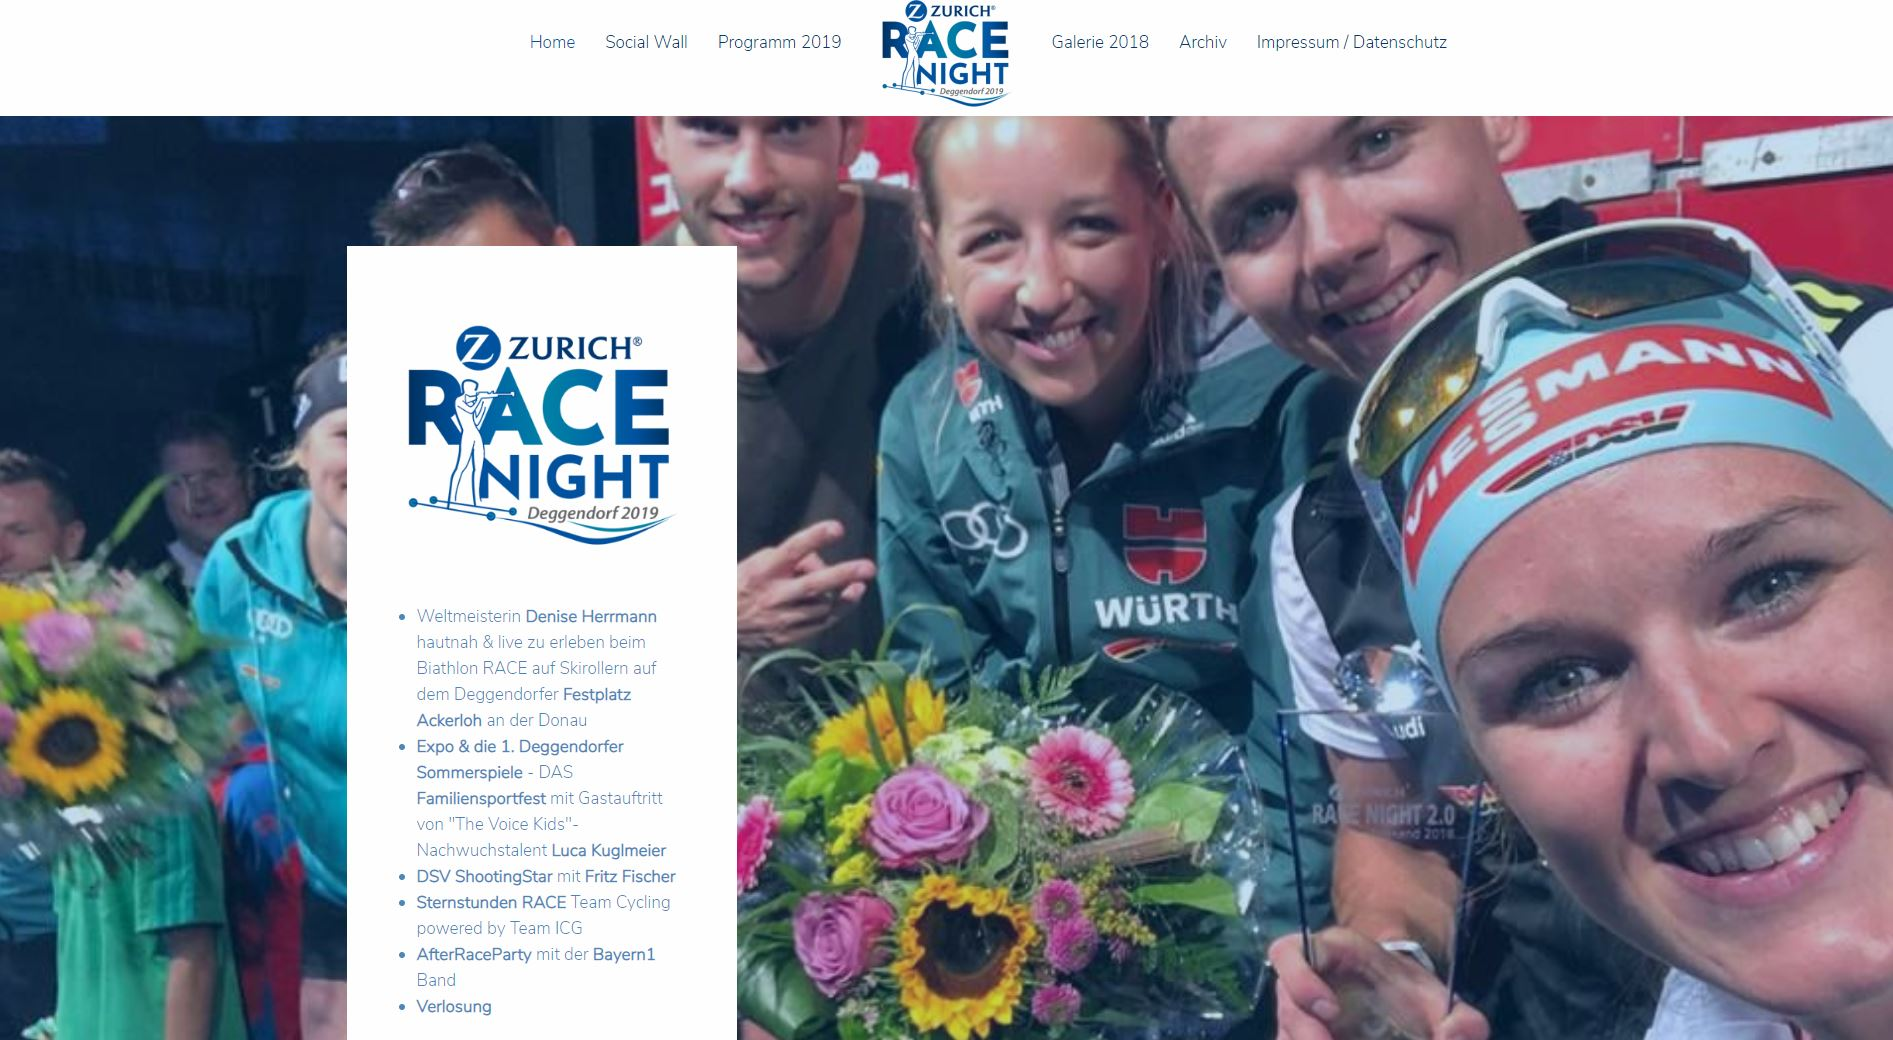 RACE NIGHT 2019